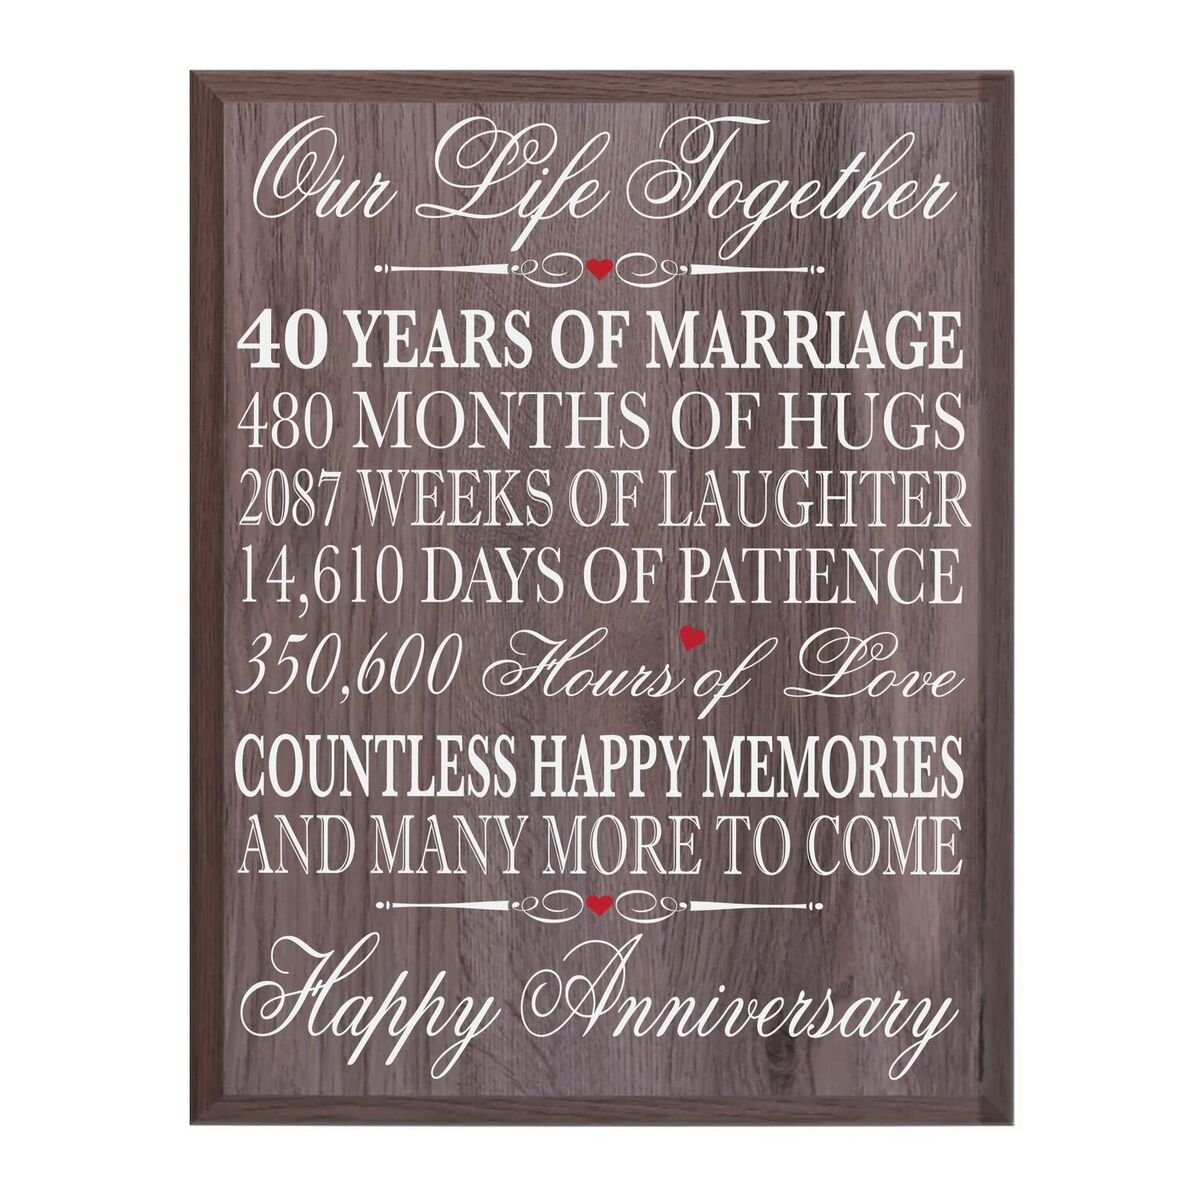 40th Wedding Anniversary Wall Plaque Gifts for Couple, 40th Anniversary Gifts for Her,40th Wedding Anniversary Gifts for Him 12'' W X 15'' H Wall Plaque By LifeSong Milestones (Salt Oak) by LifeSong Milestones